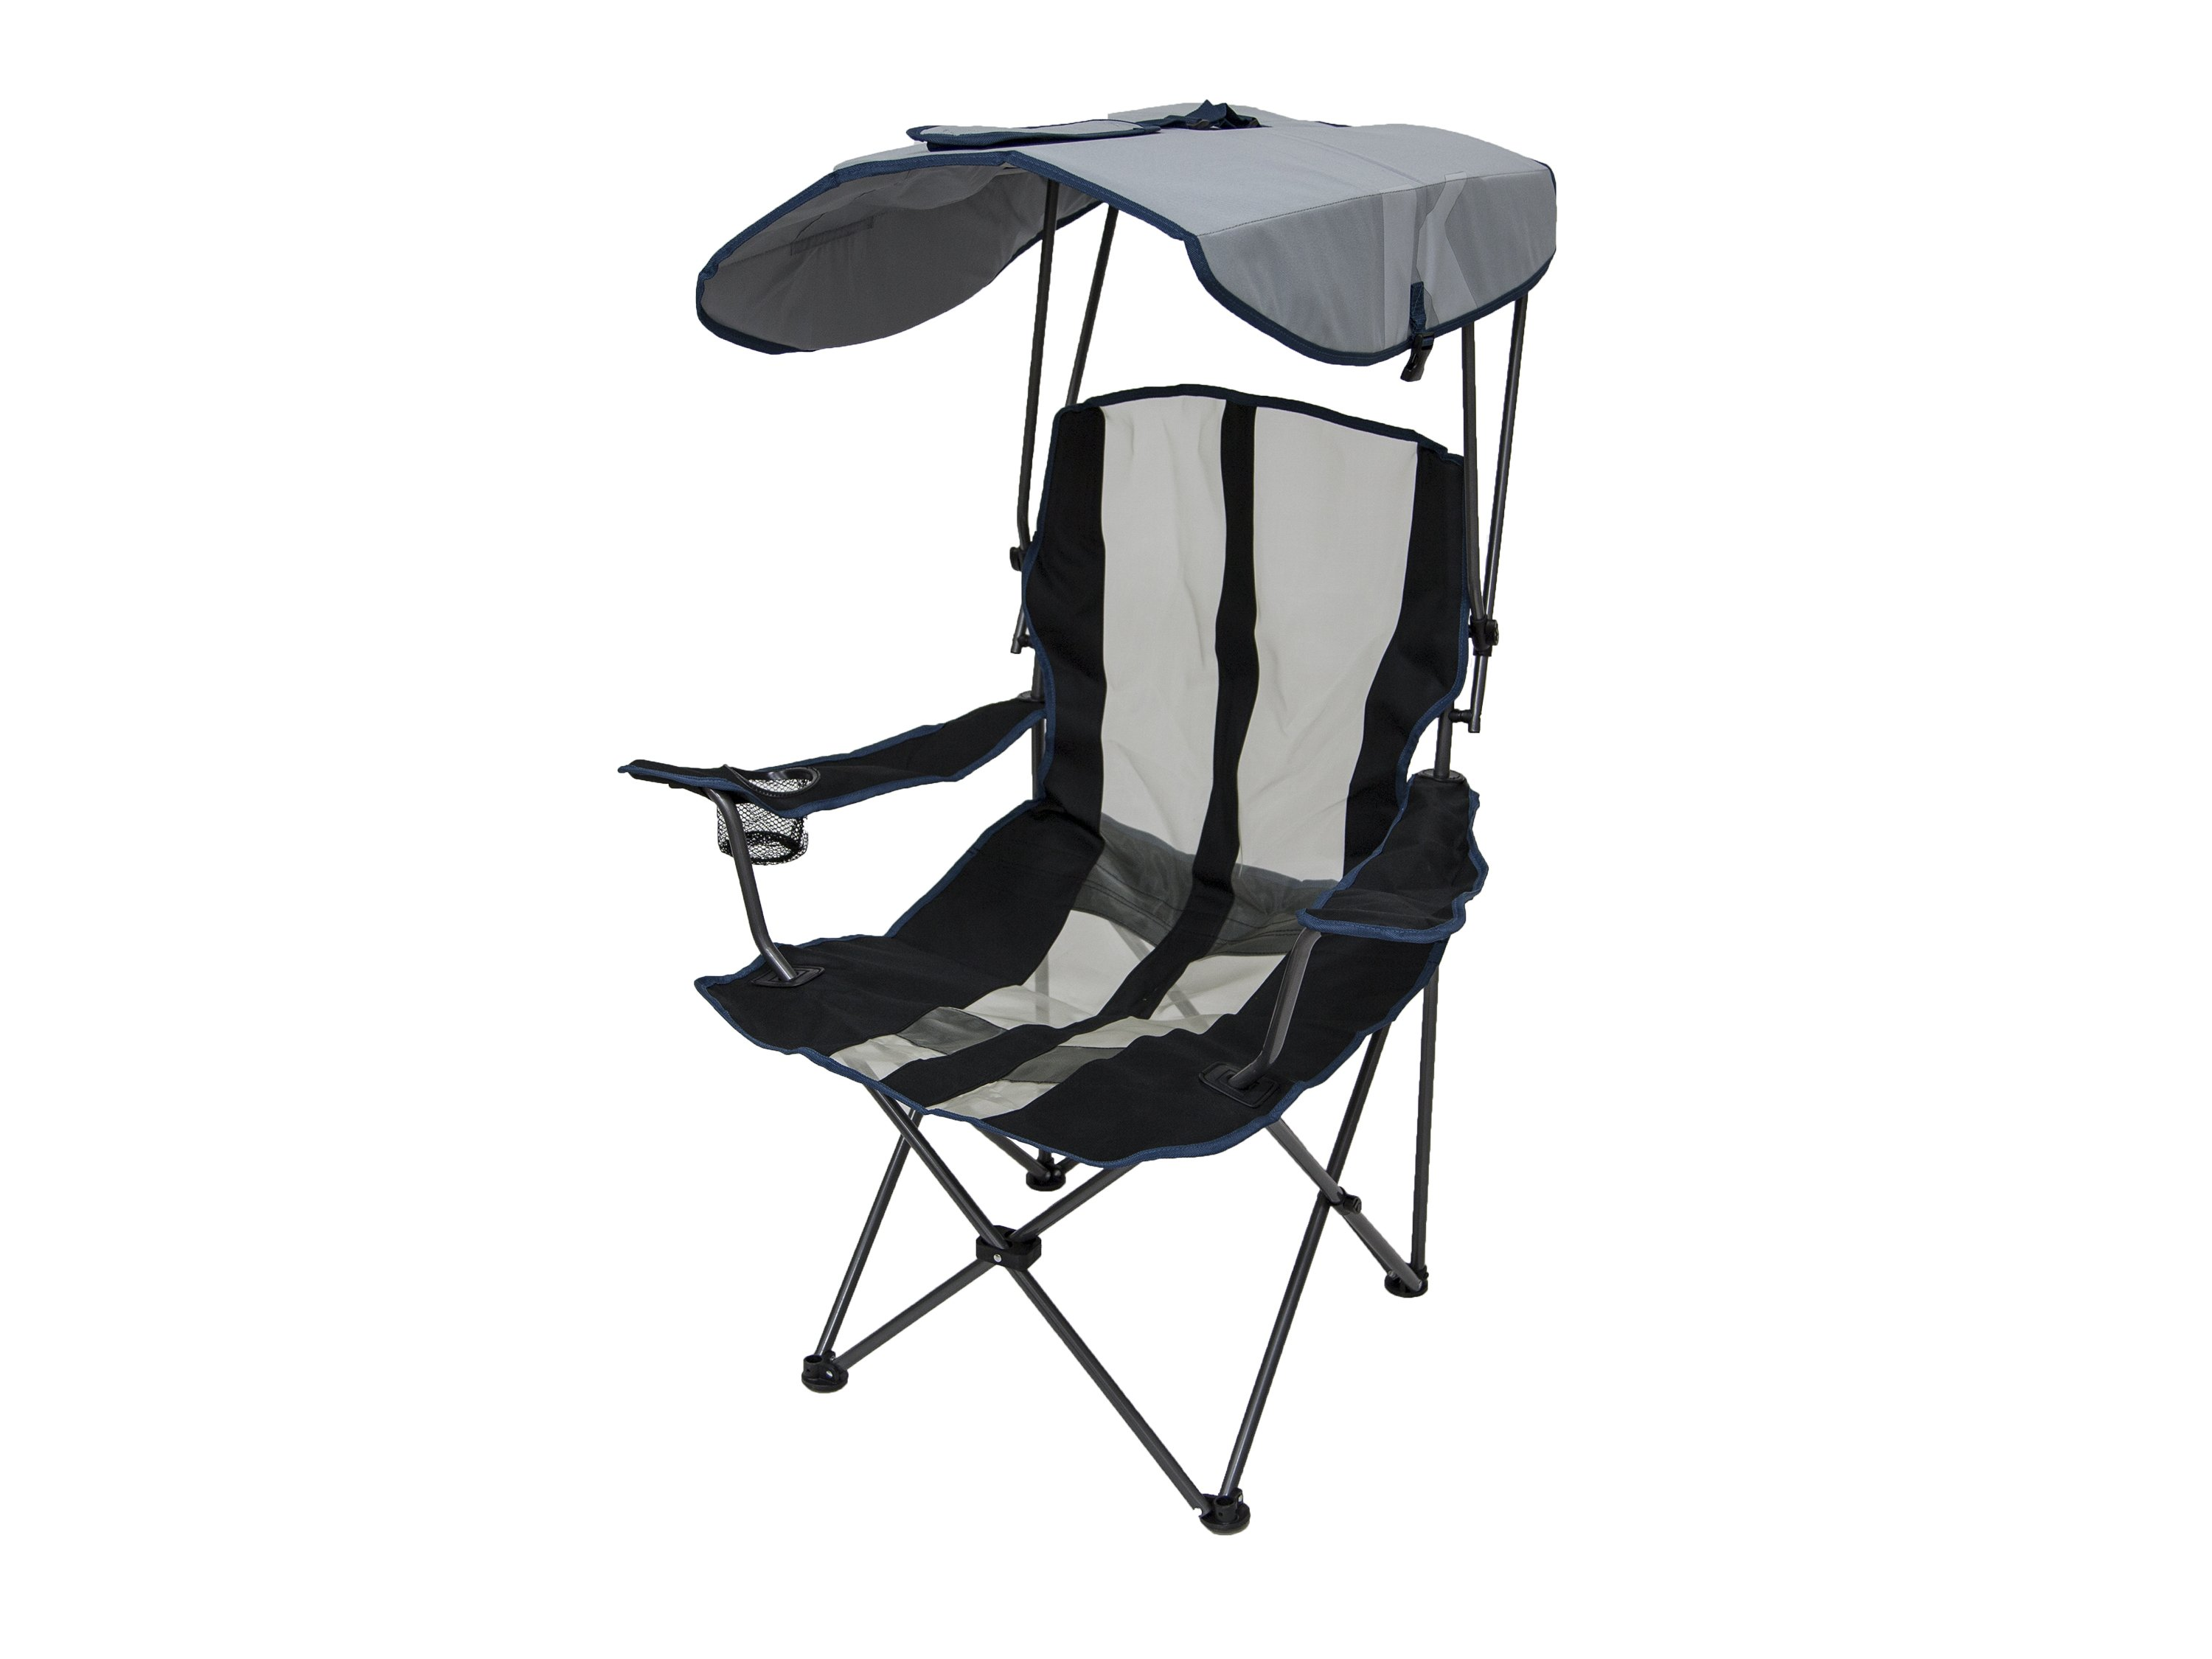 Kelsyus Premium Portable Camping Folding Lawn Chair W/ Canopy, Navy | 80188